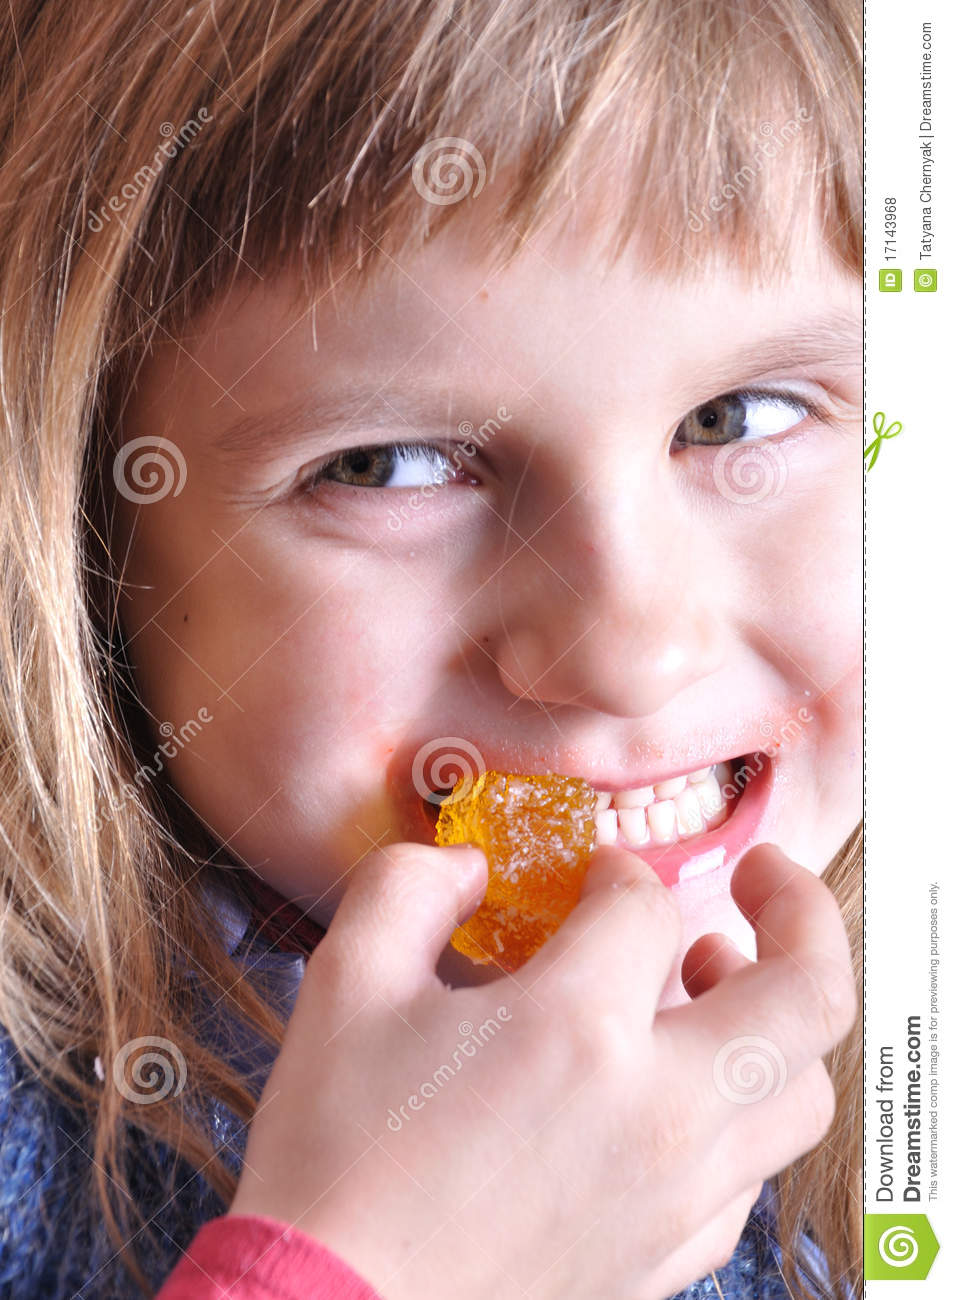 Child biting a sweet